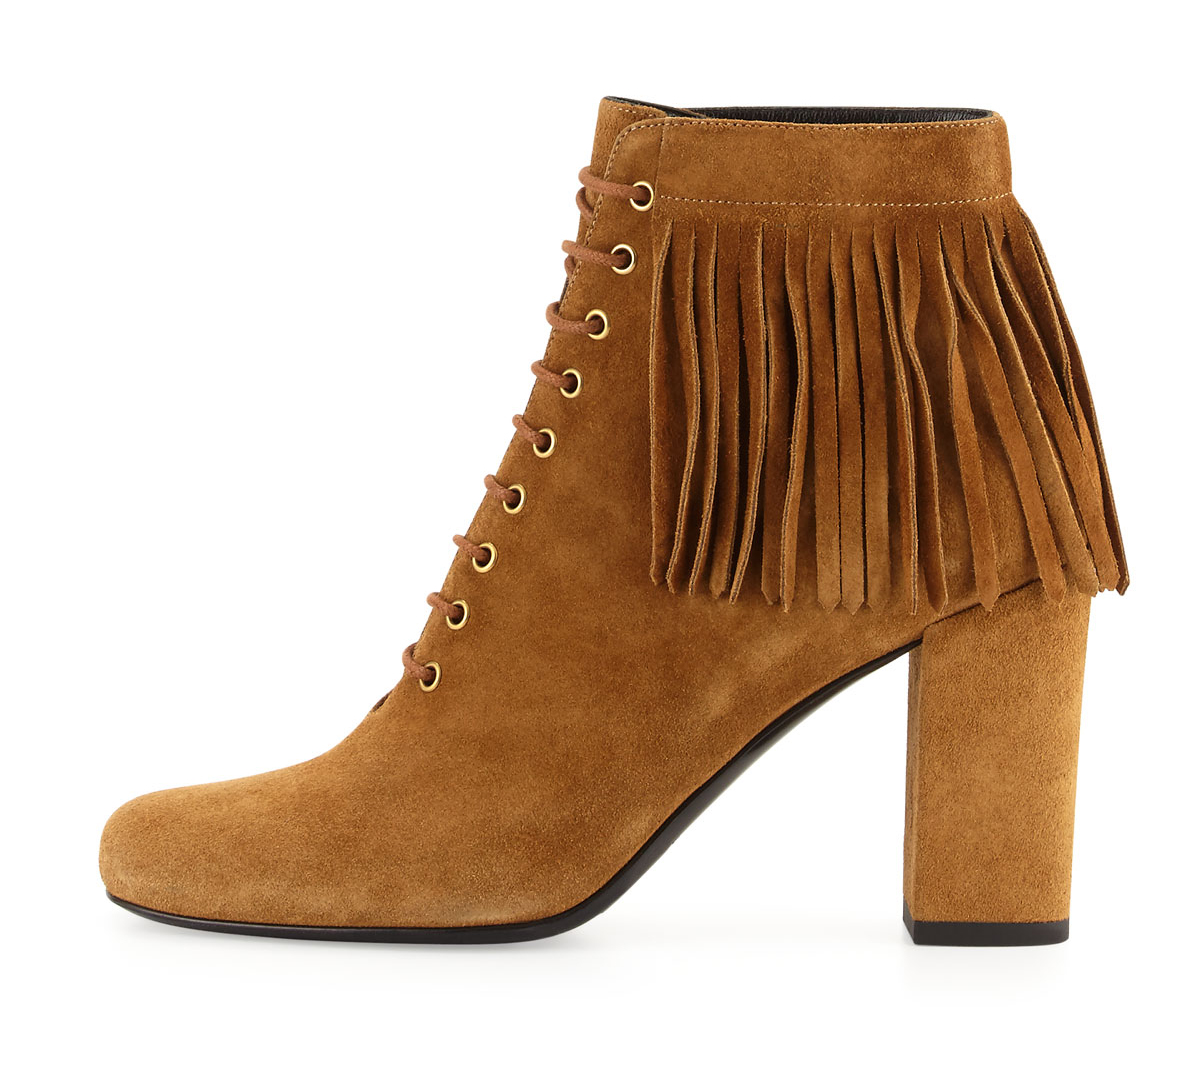 saint-laurent-fringed-suede-lace-up-boot